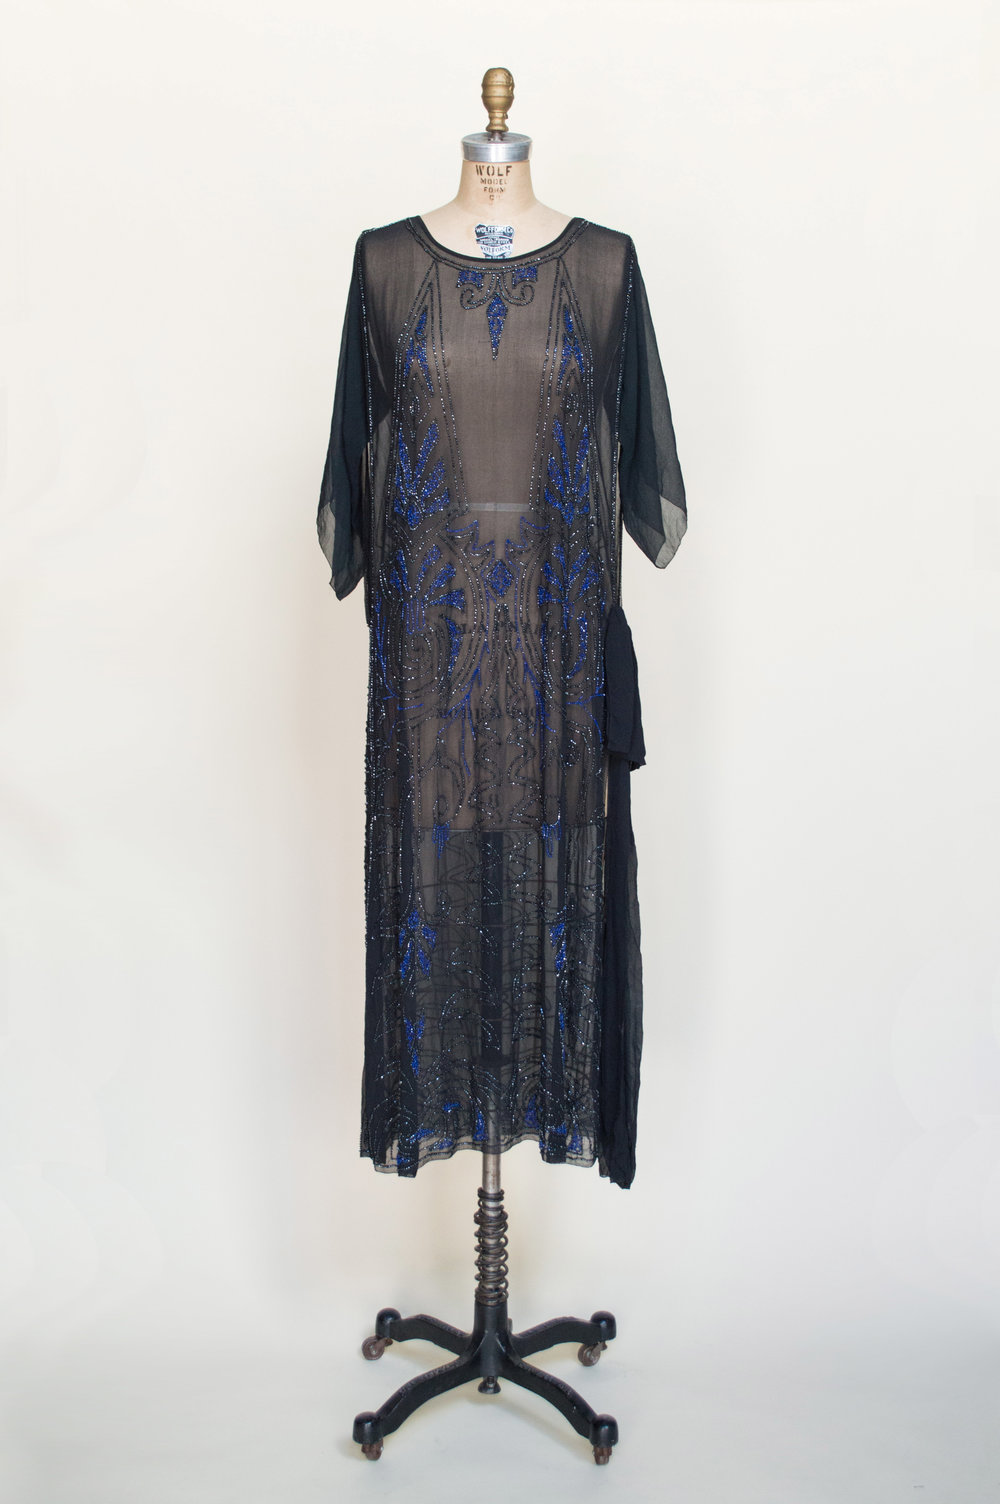 1920s Beaded Evening Dress